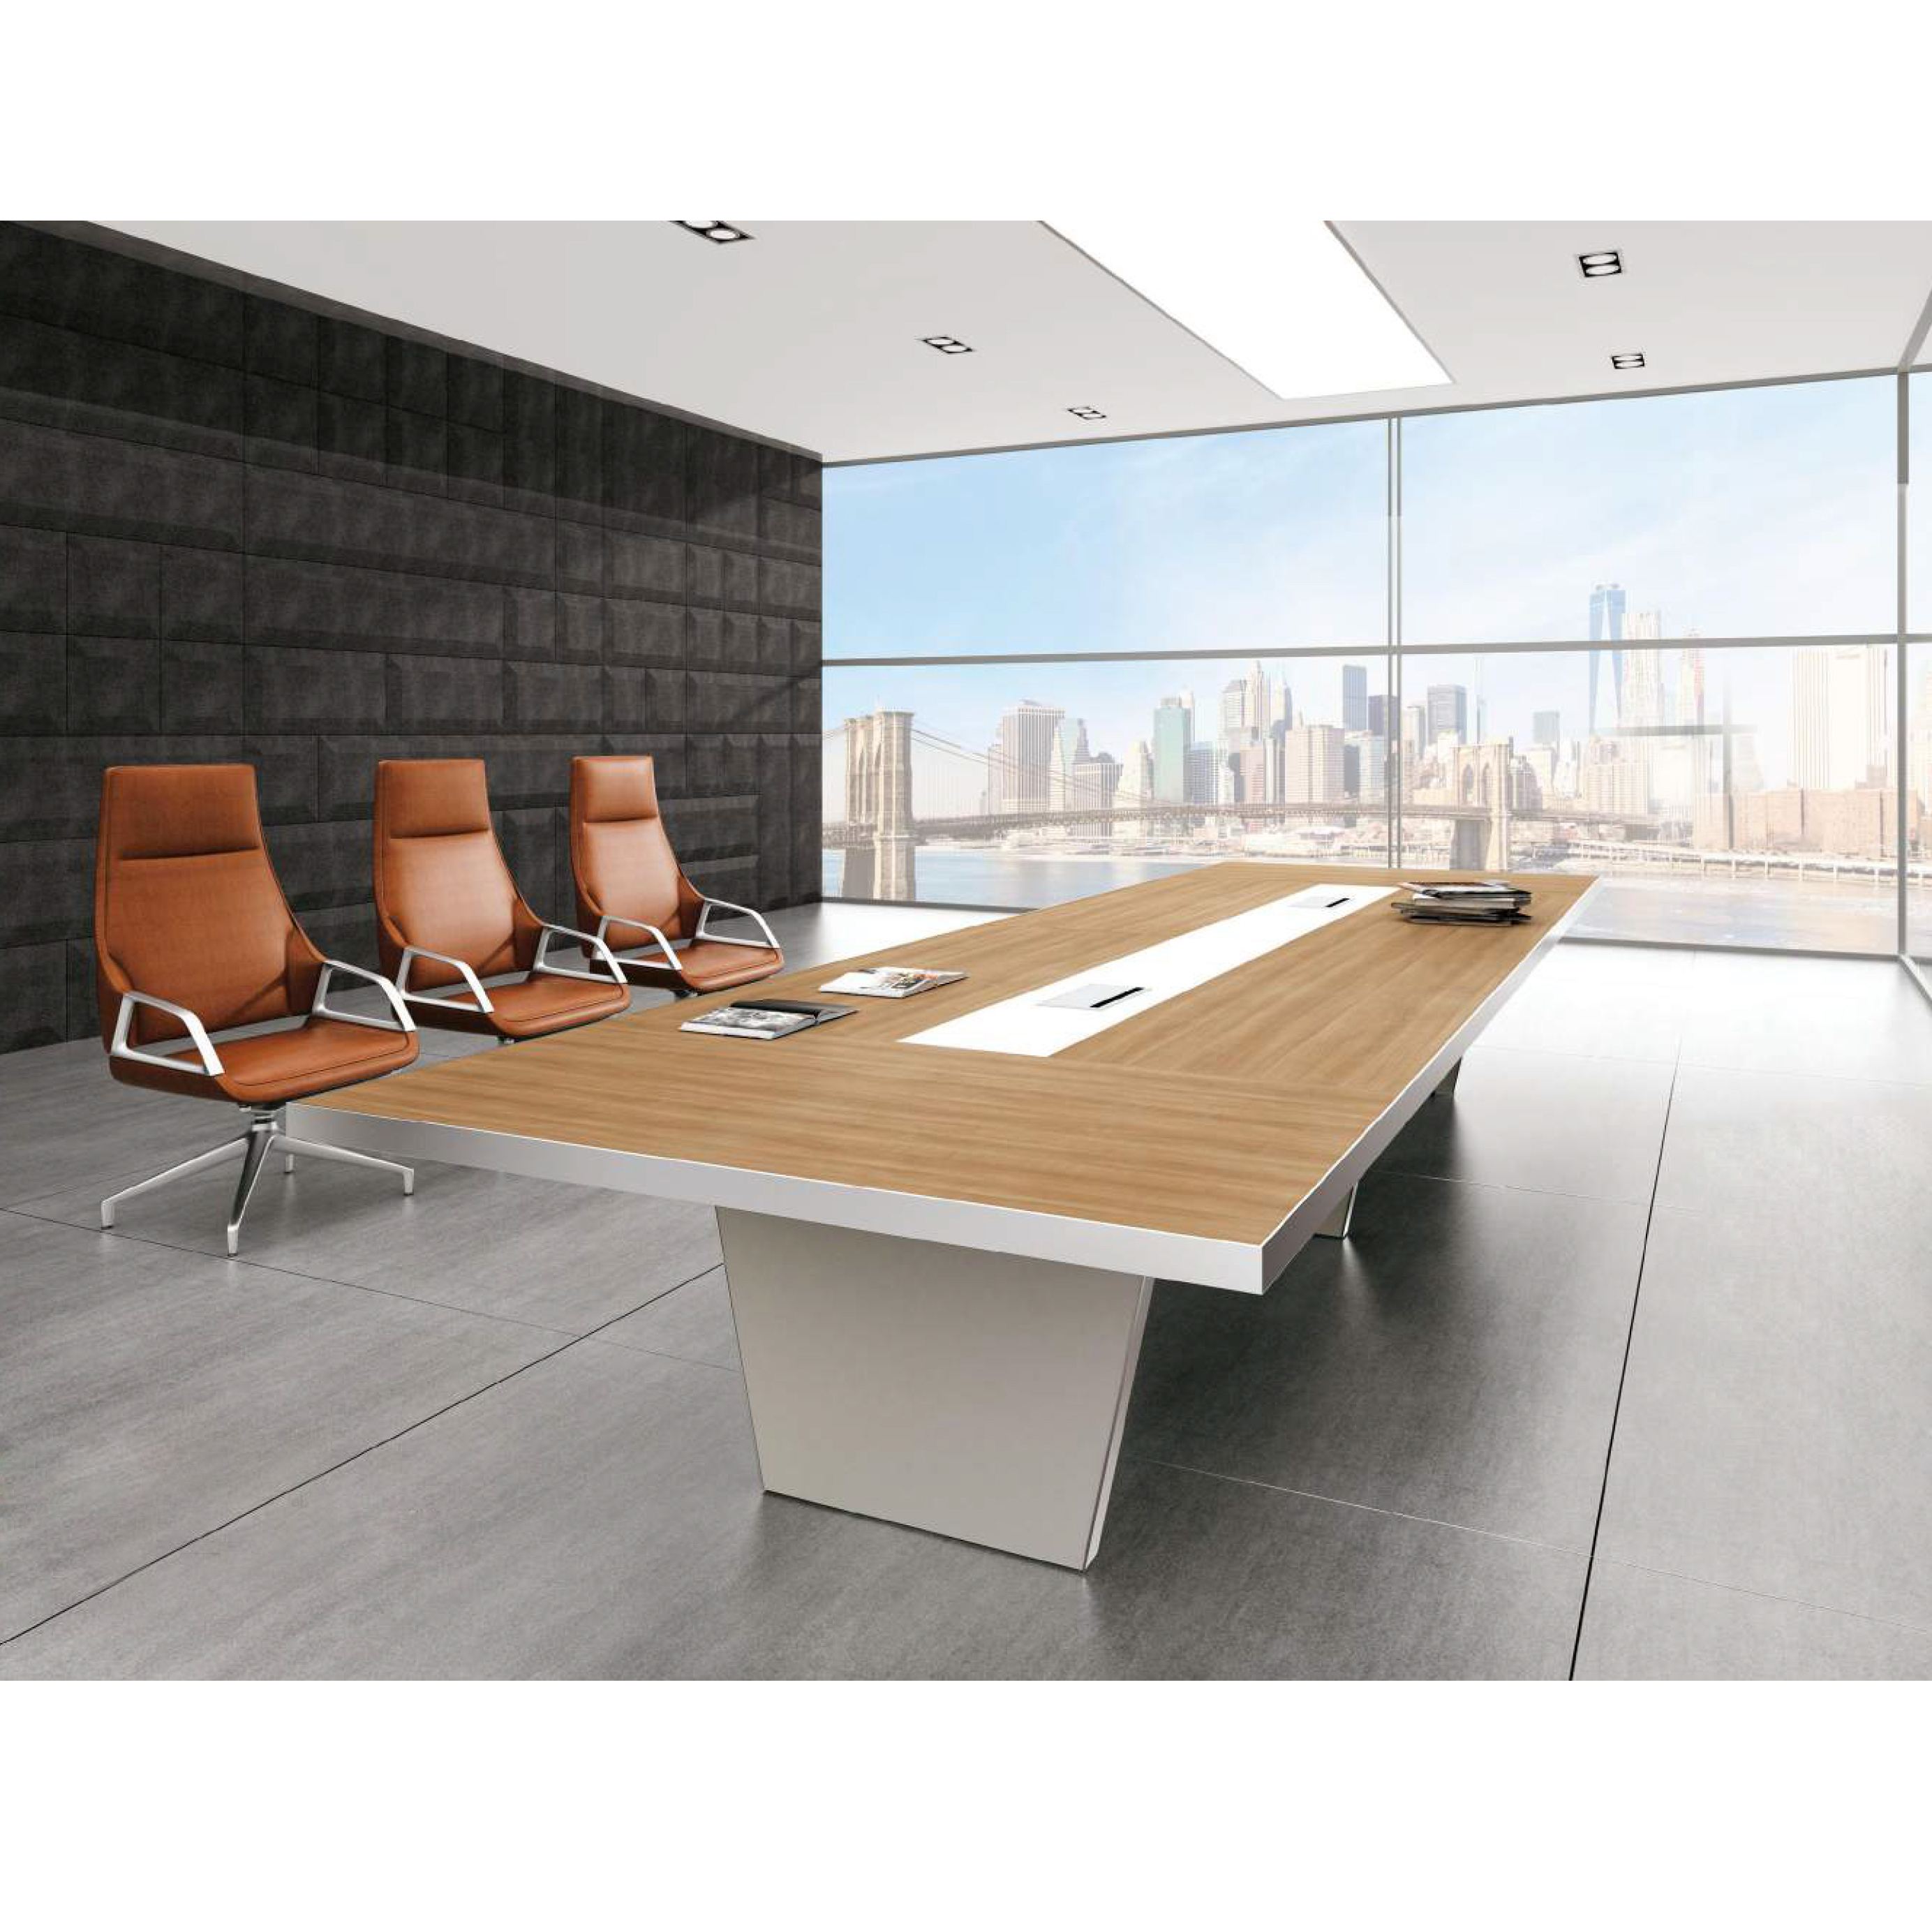 China Manufacture Modern Conference Table Room Furniture Office Meeting